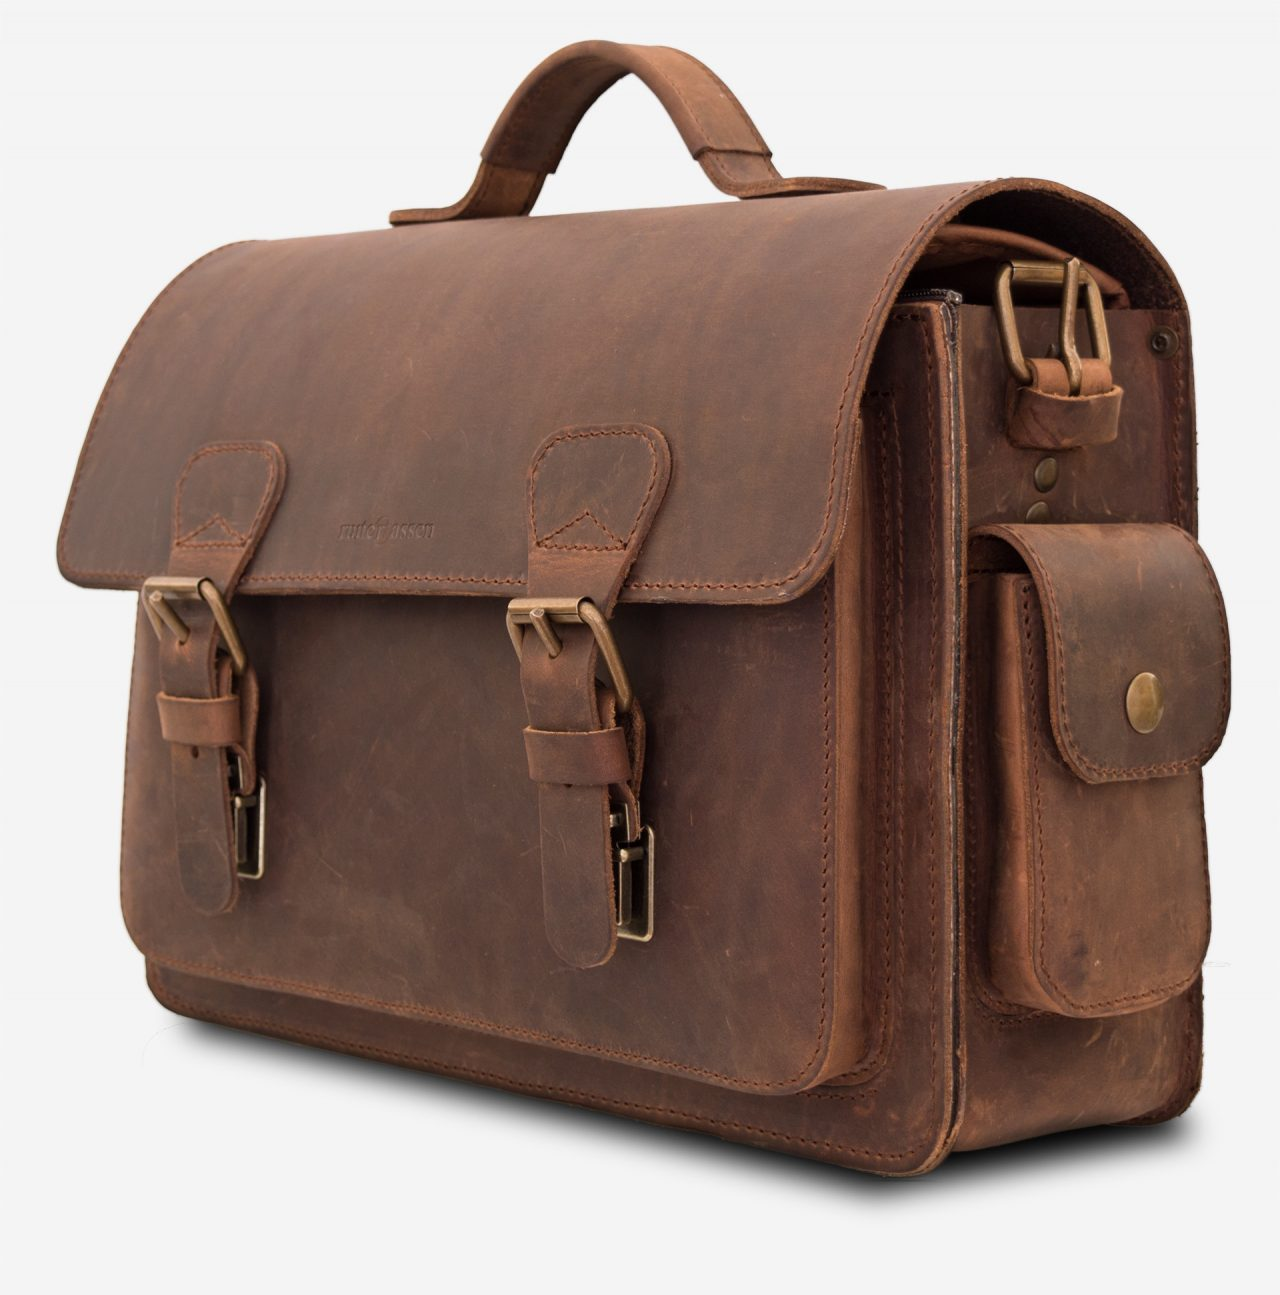 Side view of brown leather camera bag 733103.